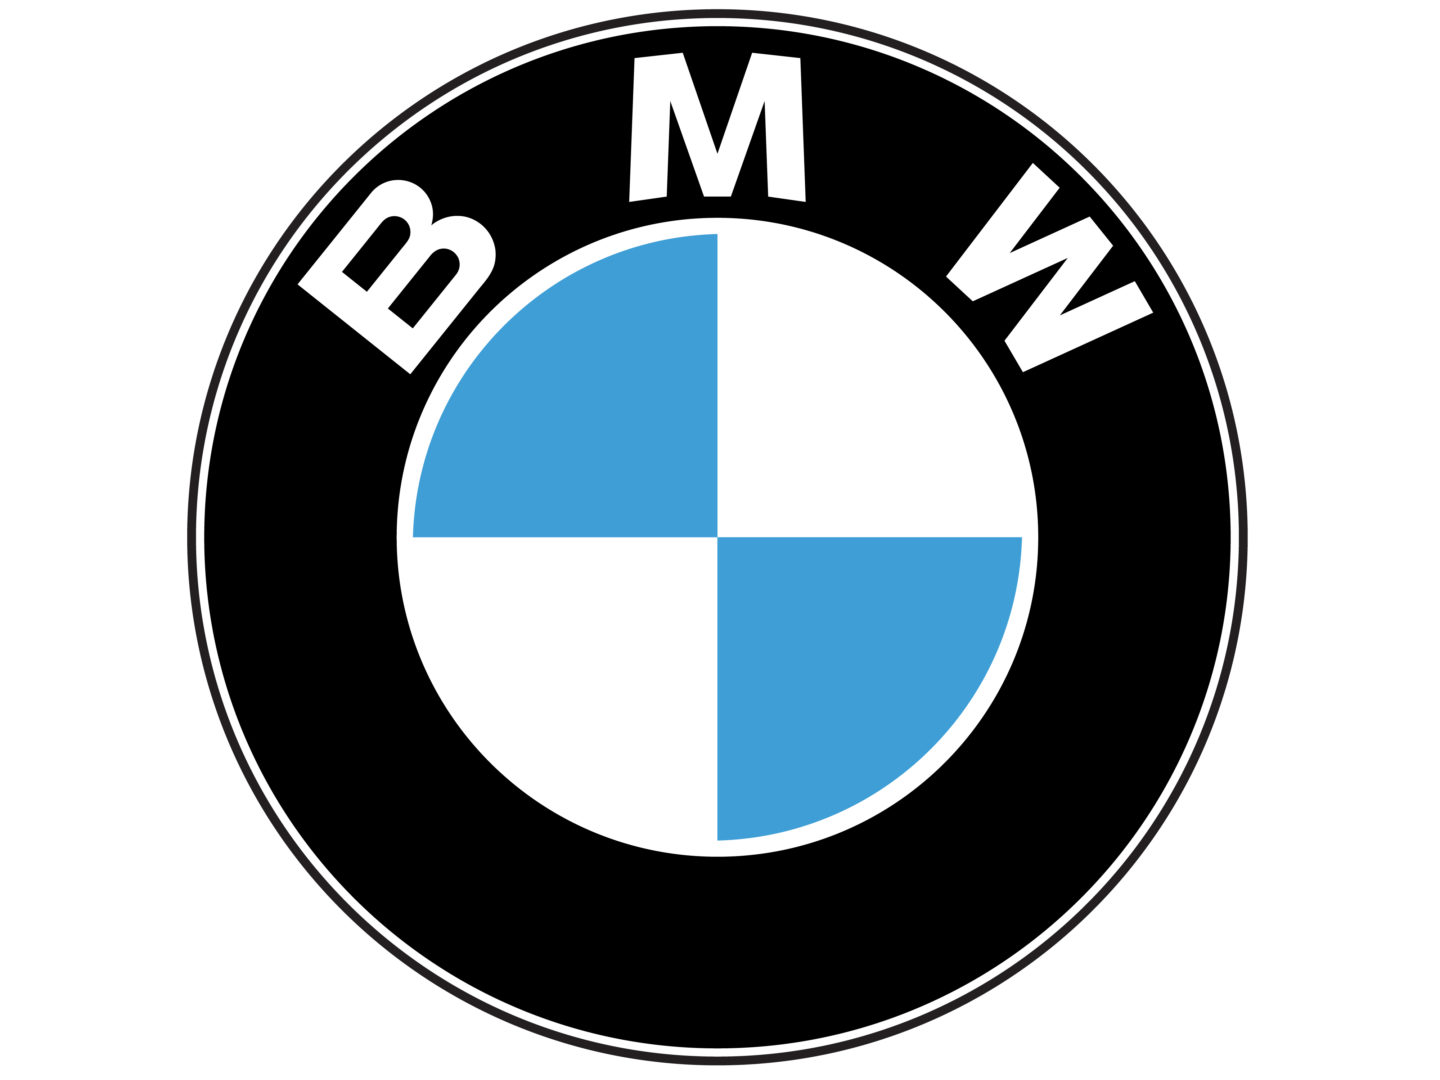 https://motorcycle-logos.com/wp-content/uploads/2017/10/BMW-logo-1979.jpg